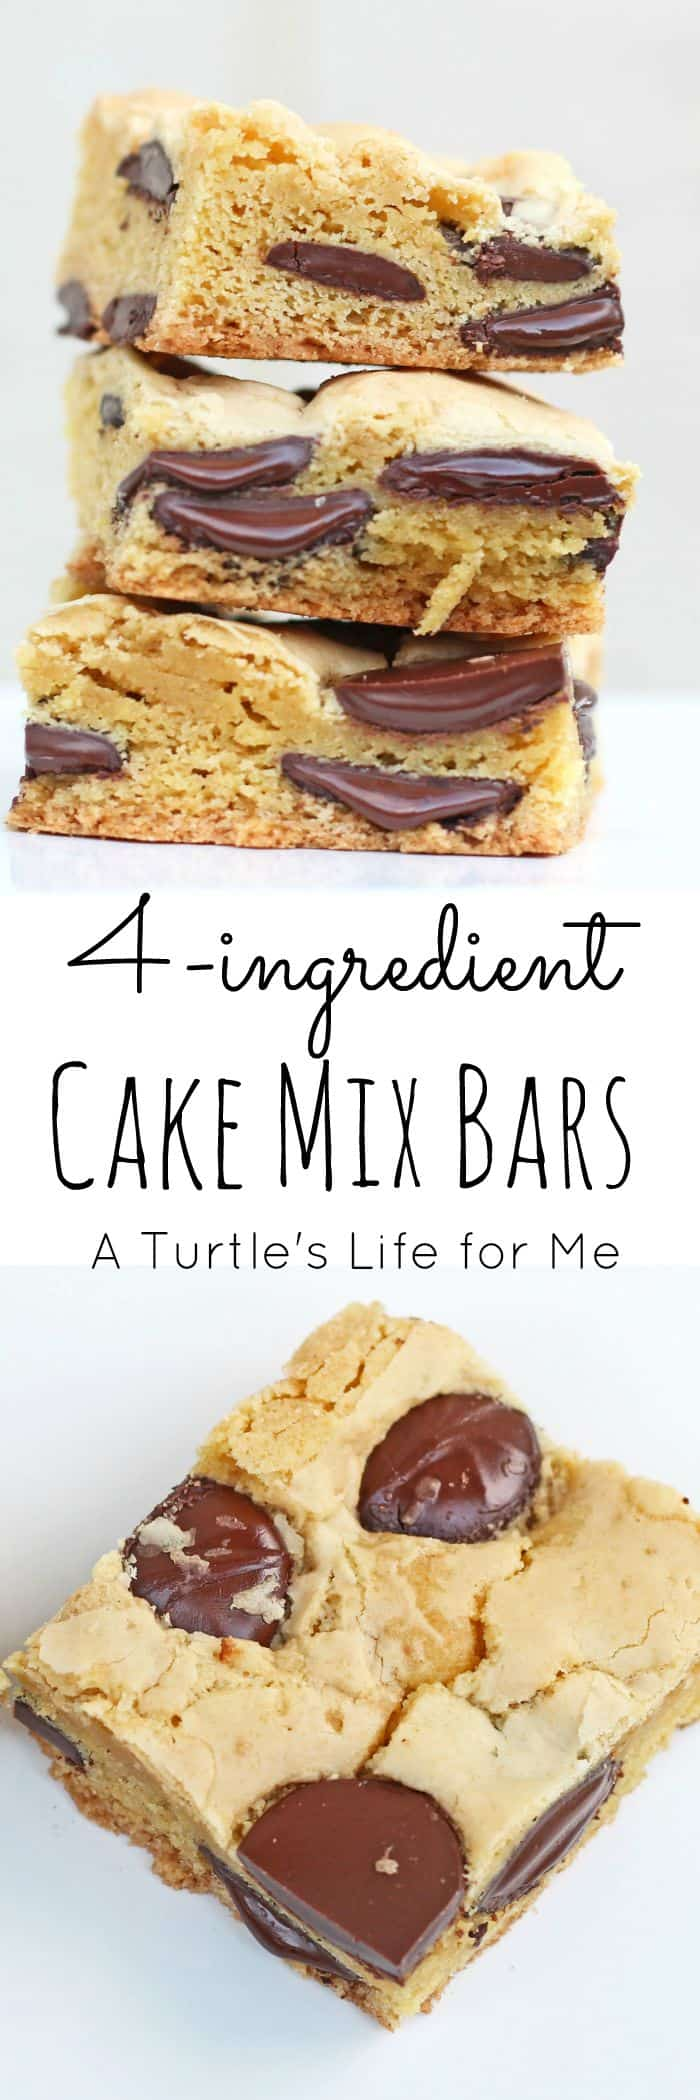 Cake Mix Bars With Only 4 Ingredients